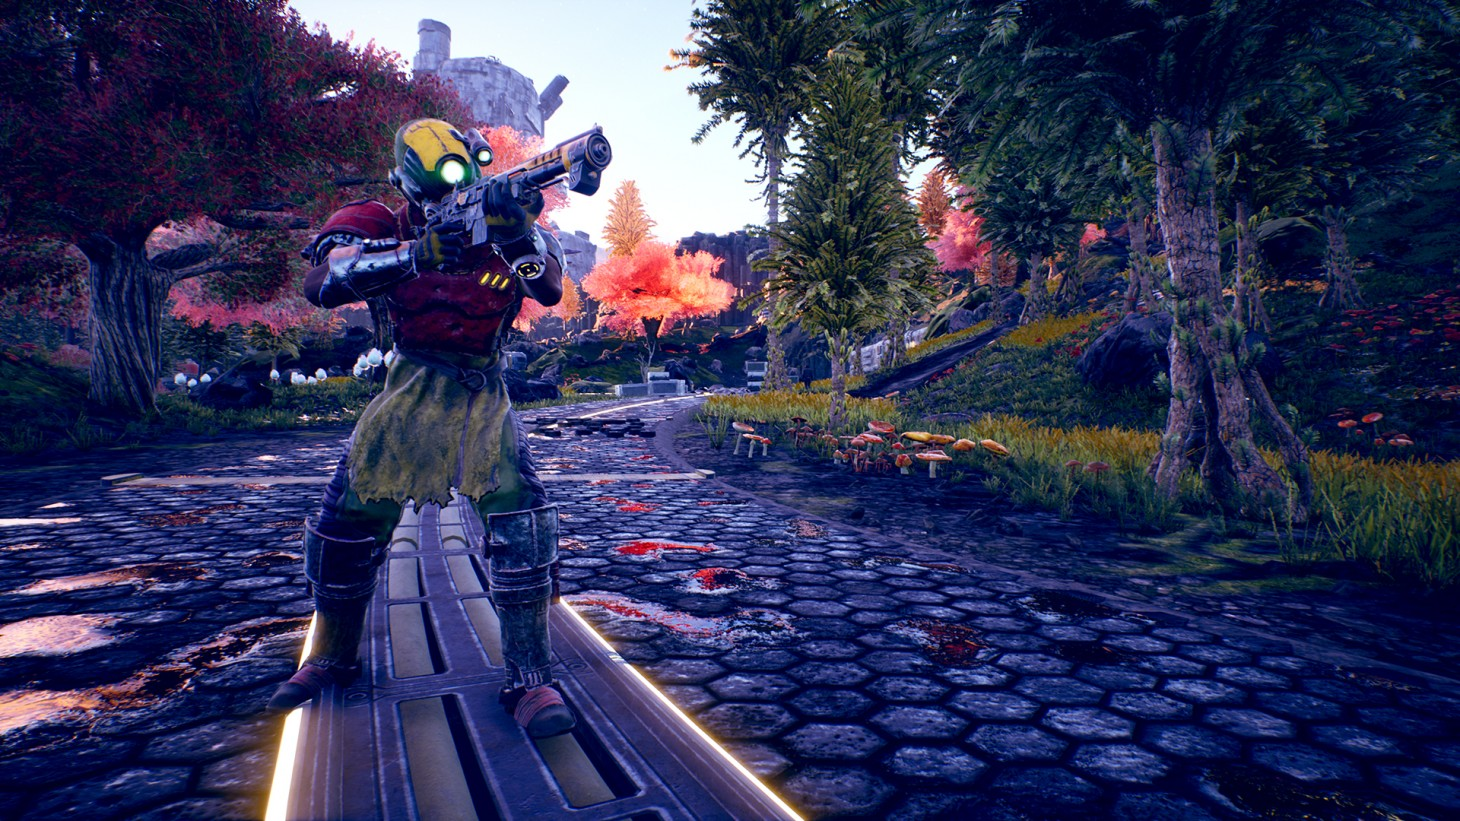 How The Outer Worlds Channels Fallout, Classic Sci-fi, and the Real World | Den of Geek